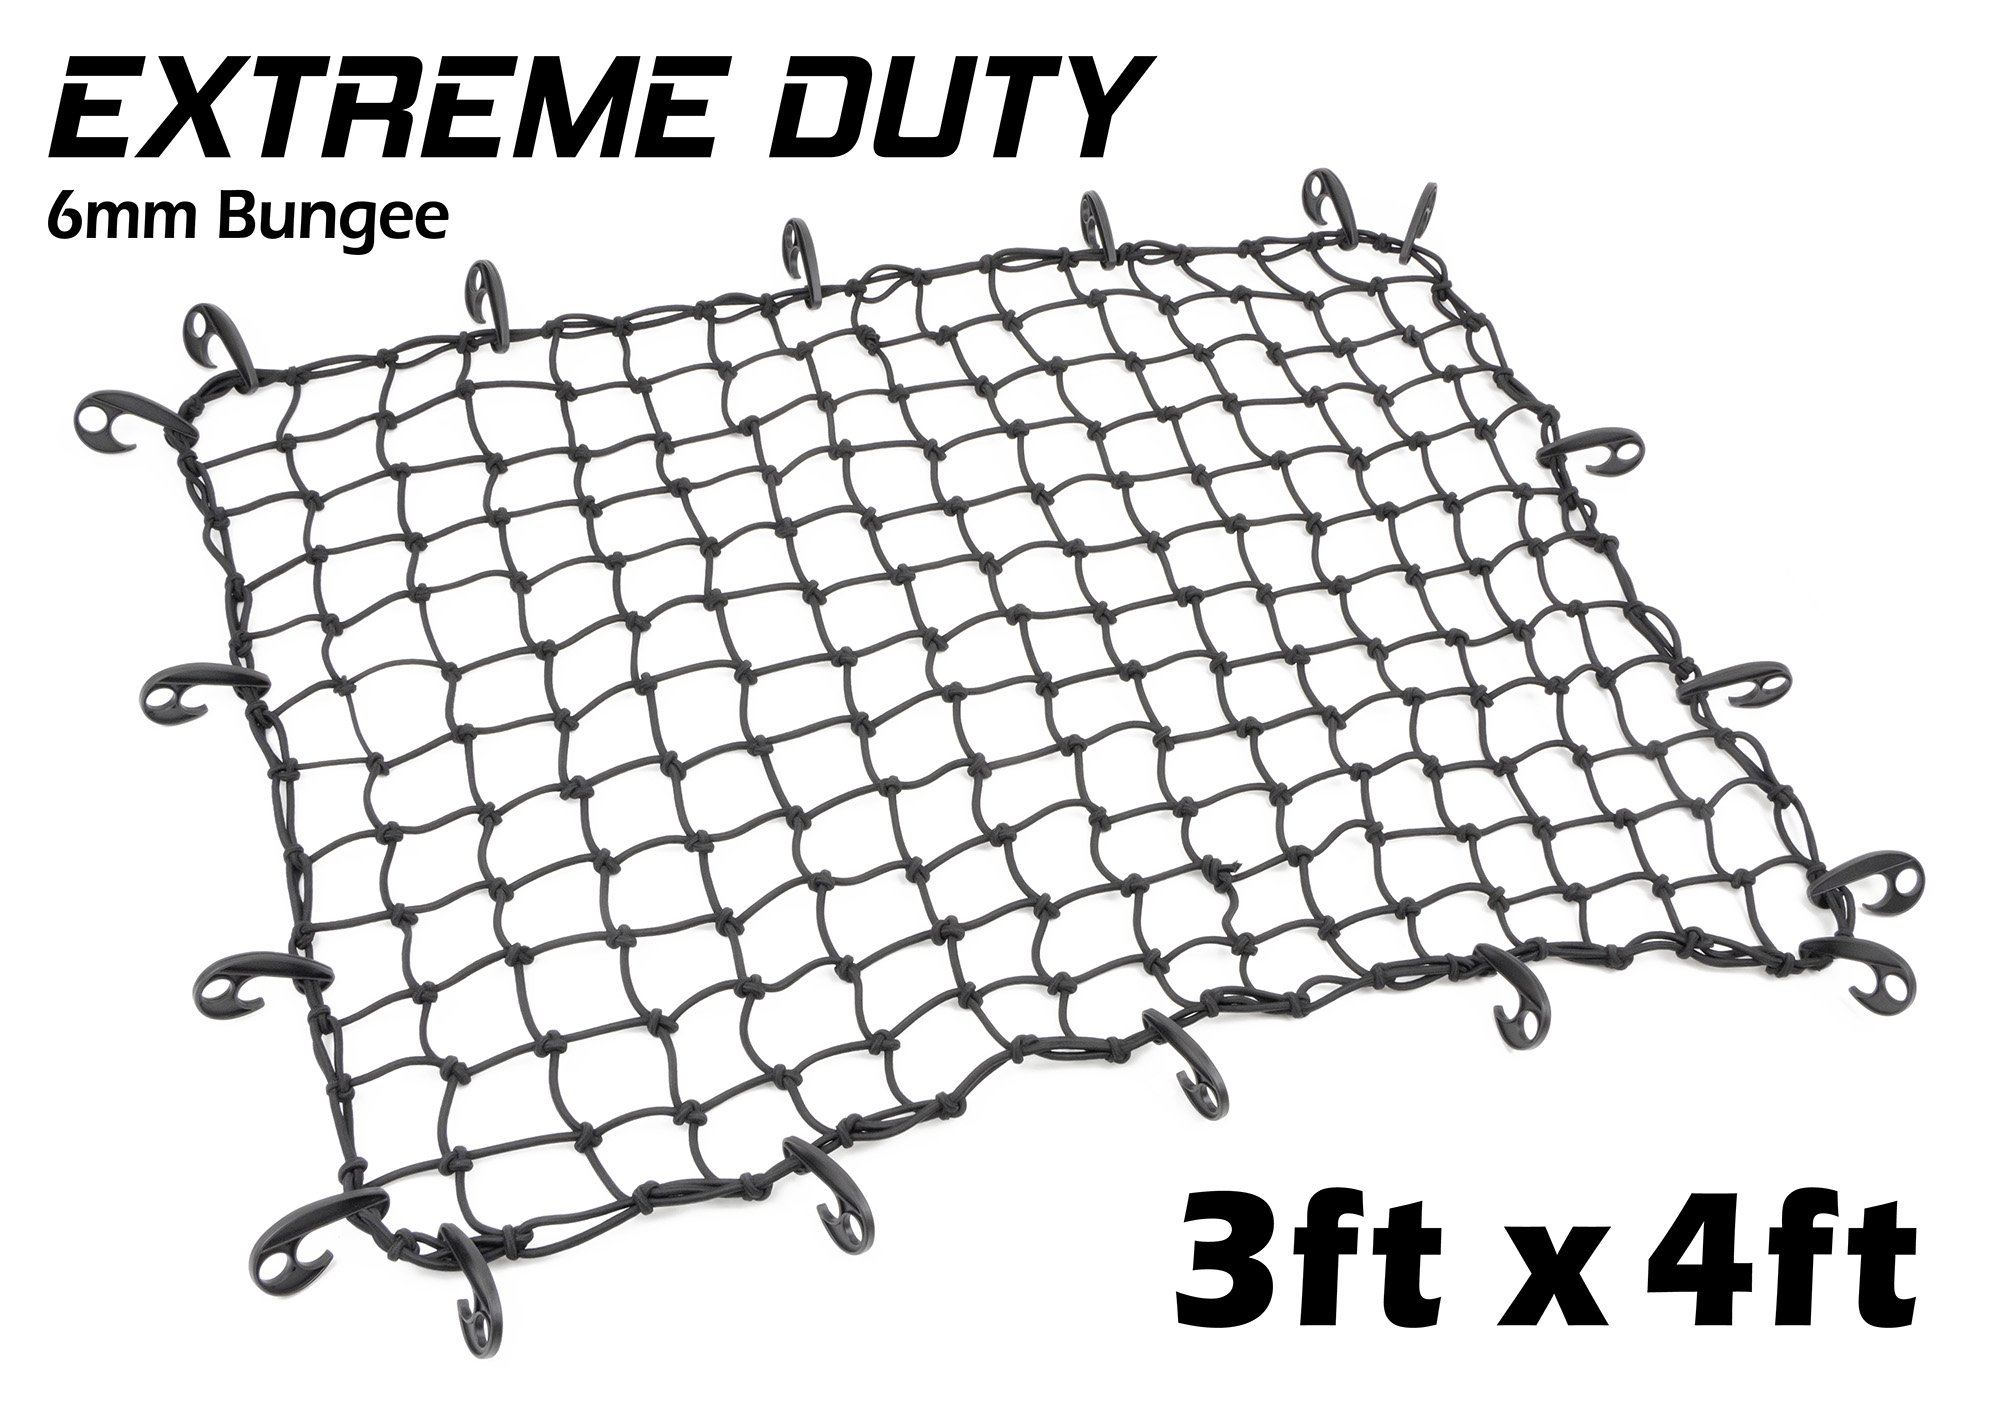 3ft x 4ft PowerTye Mfg EXTREME Duty 6mm Bungee Elastic Cargo Net, Stretches to 54'' x 72'', 18 Large Latch Hooks, Black by Powertye